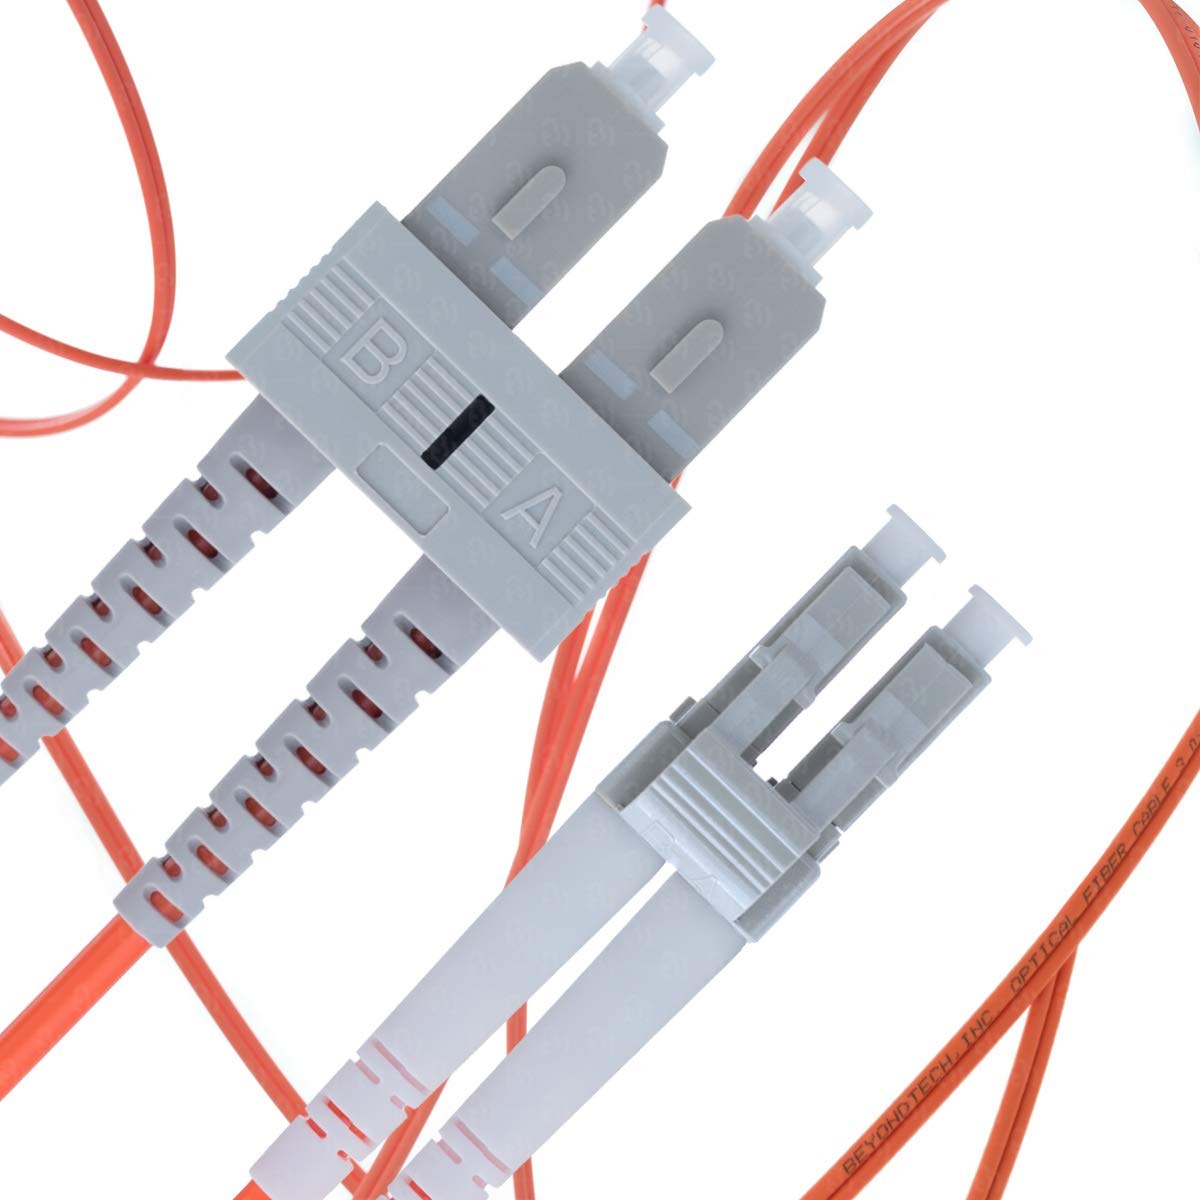 LC to SC Fiber Patch Cable Multimode Duplex - 25m (82ft) - 50/125 OM2 - Beyondtech PureOptics Series